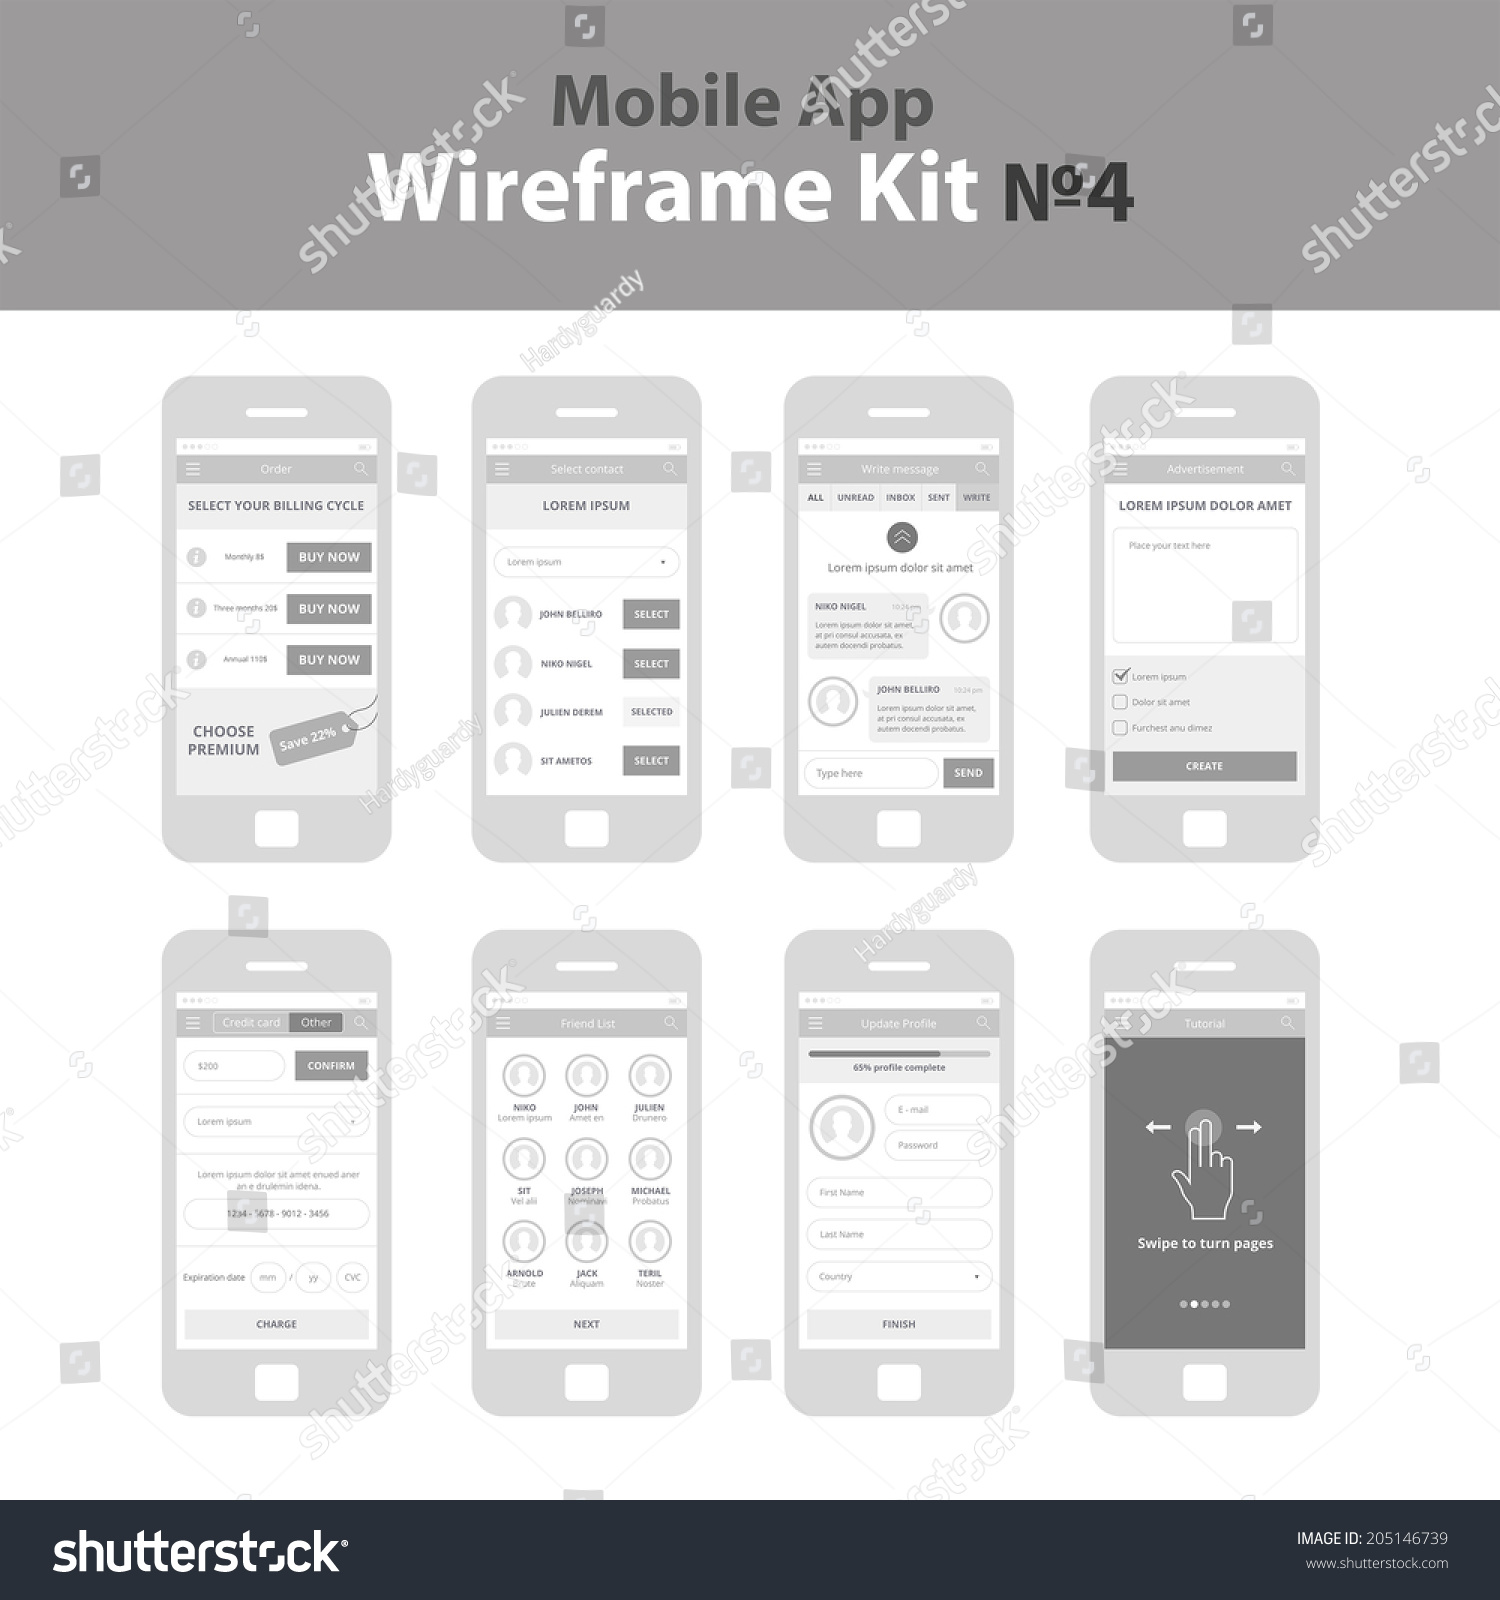 Mobile app wireframe ui kit 4 vector de stock205146739 shutterstock mobile app wireframe ui kit 4 order plan screen select contacts screen write malvernweather Gallery